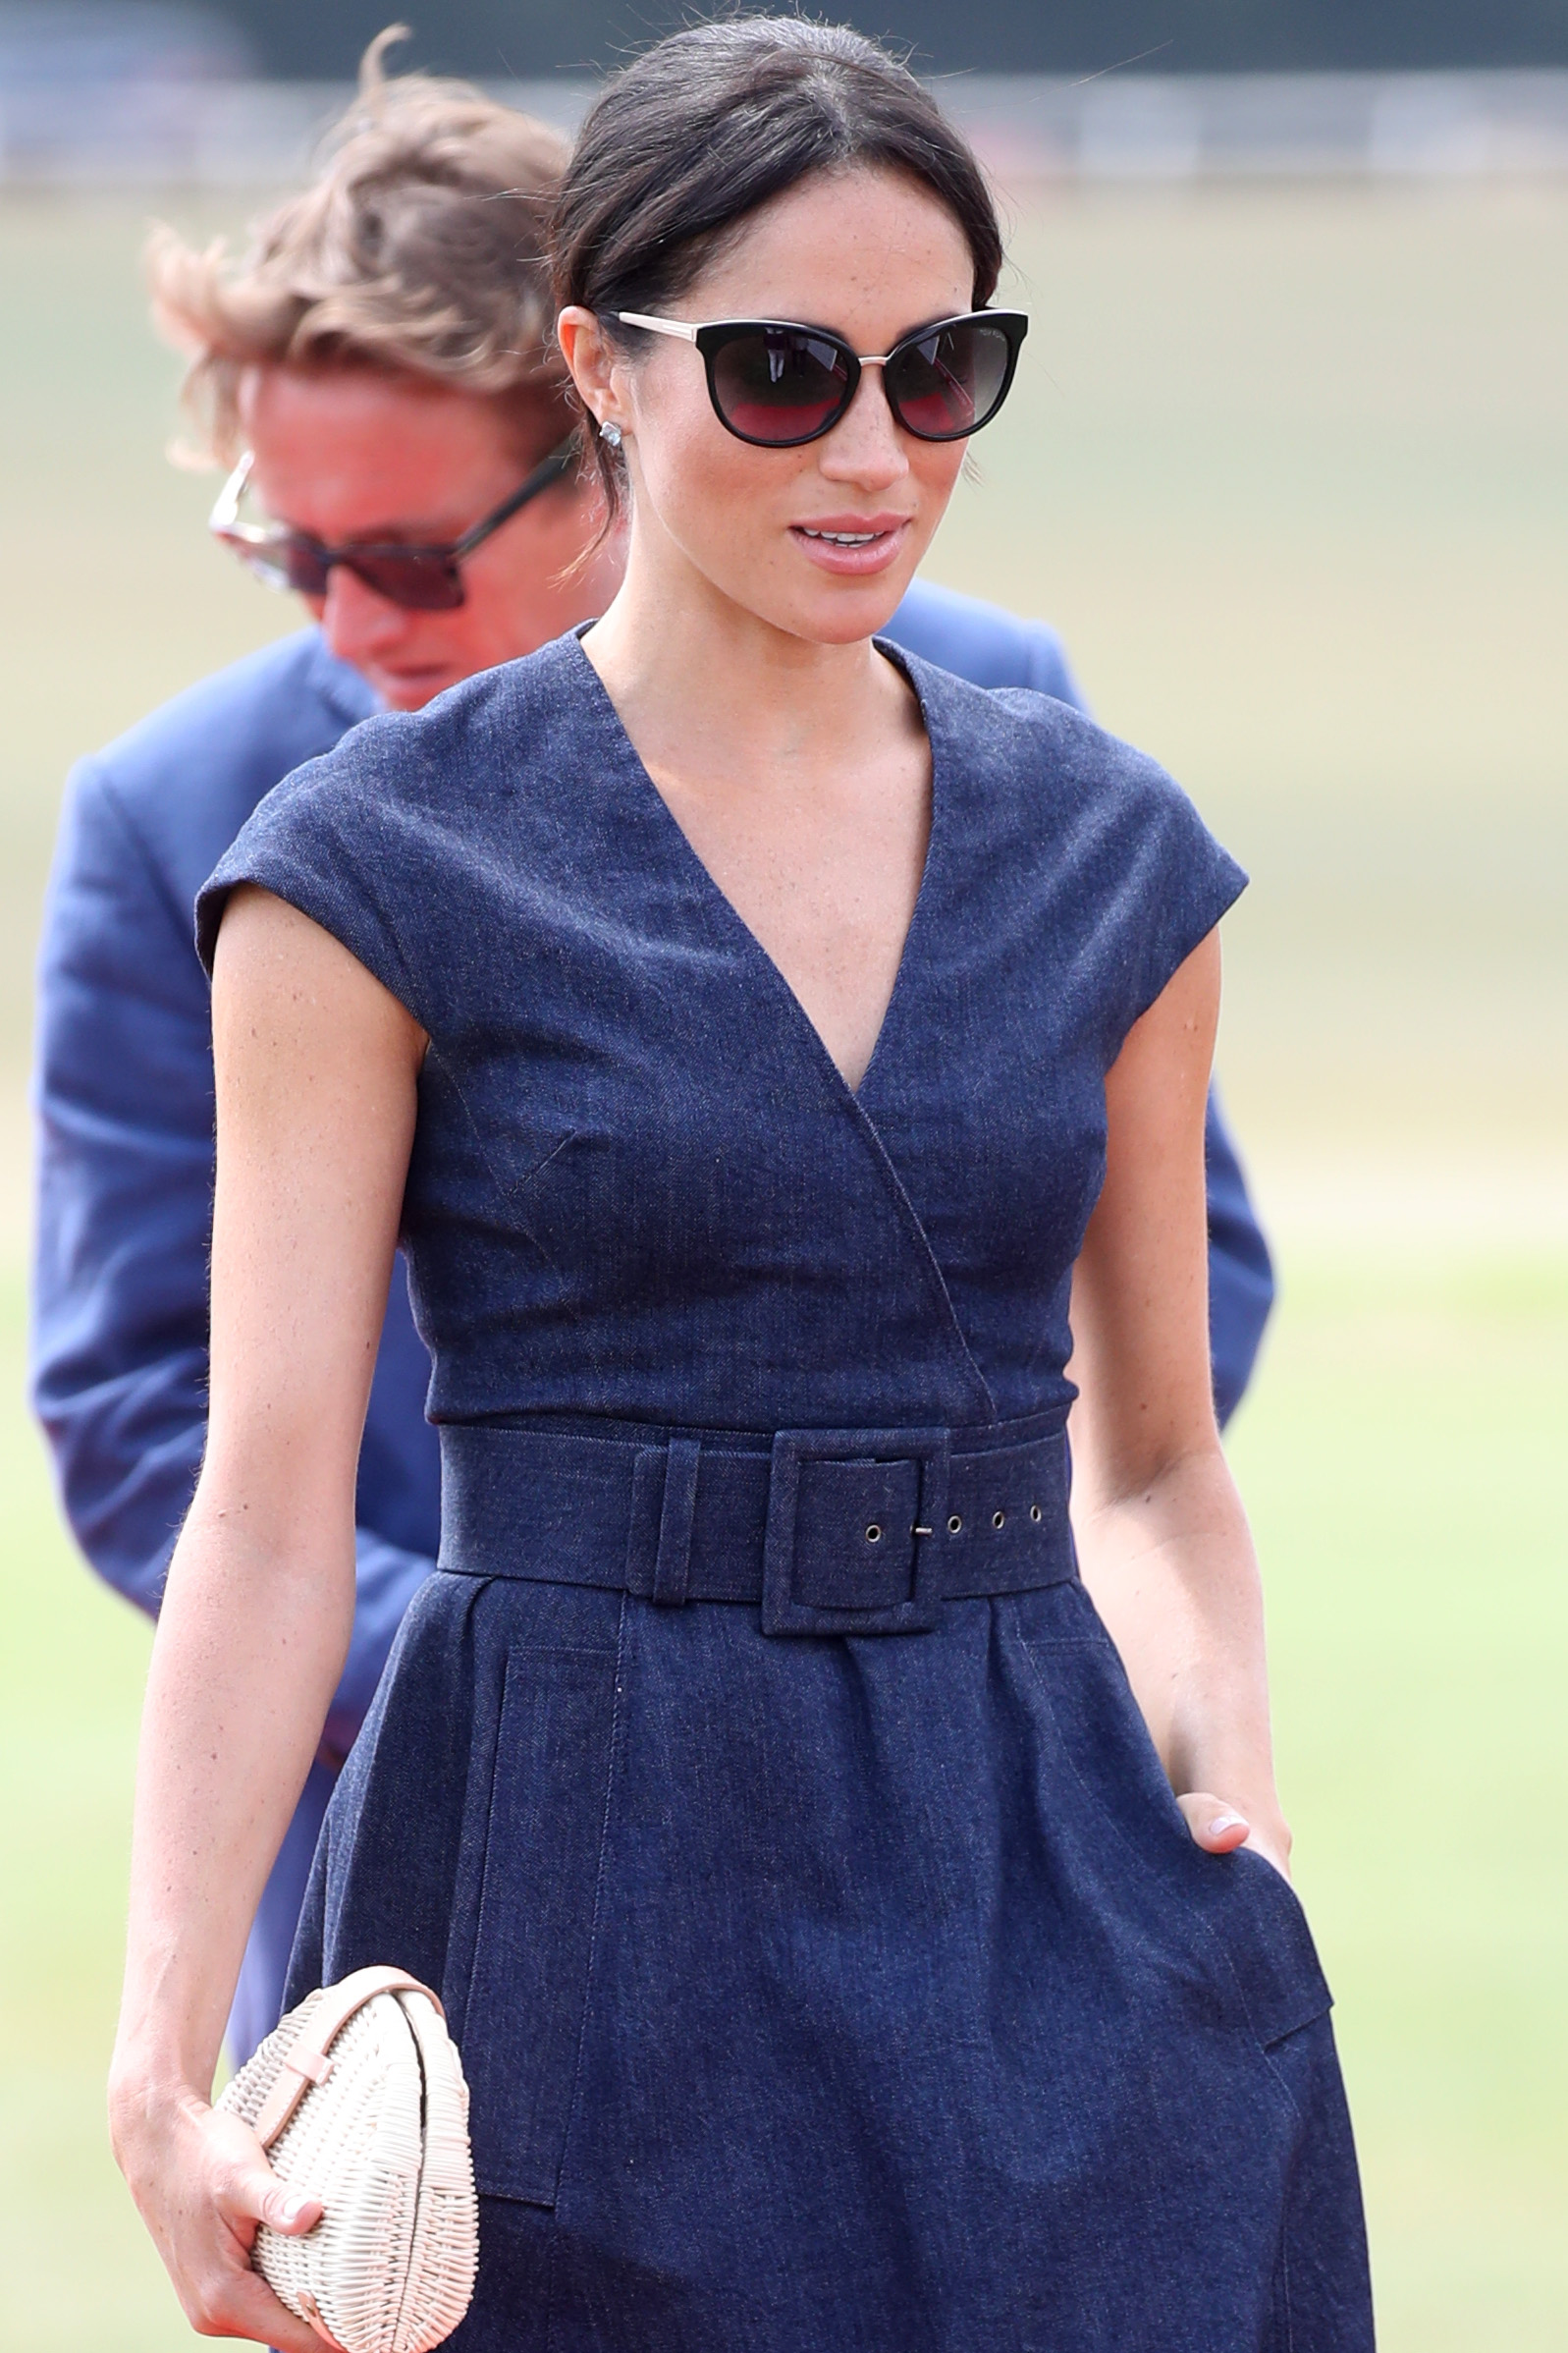 WINDSOR, ENGLAND - JULY 26: Meghan Duchess of Sussex arrives for the Sentebale Polo 2018 held at the Royal County of Berkshire Polo Club on July 26, 2018 in Windsor, England. (Photo by Chris Jackson/Getty Images)